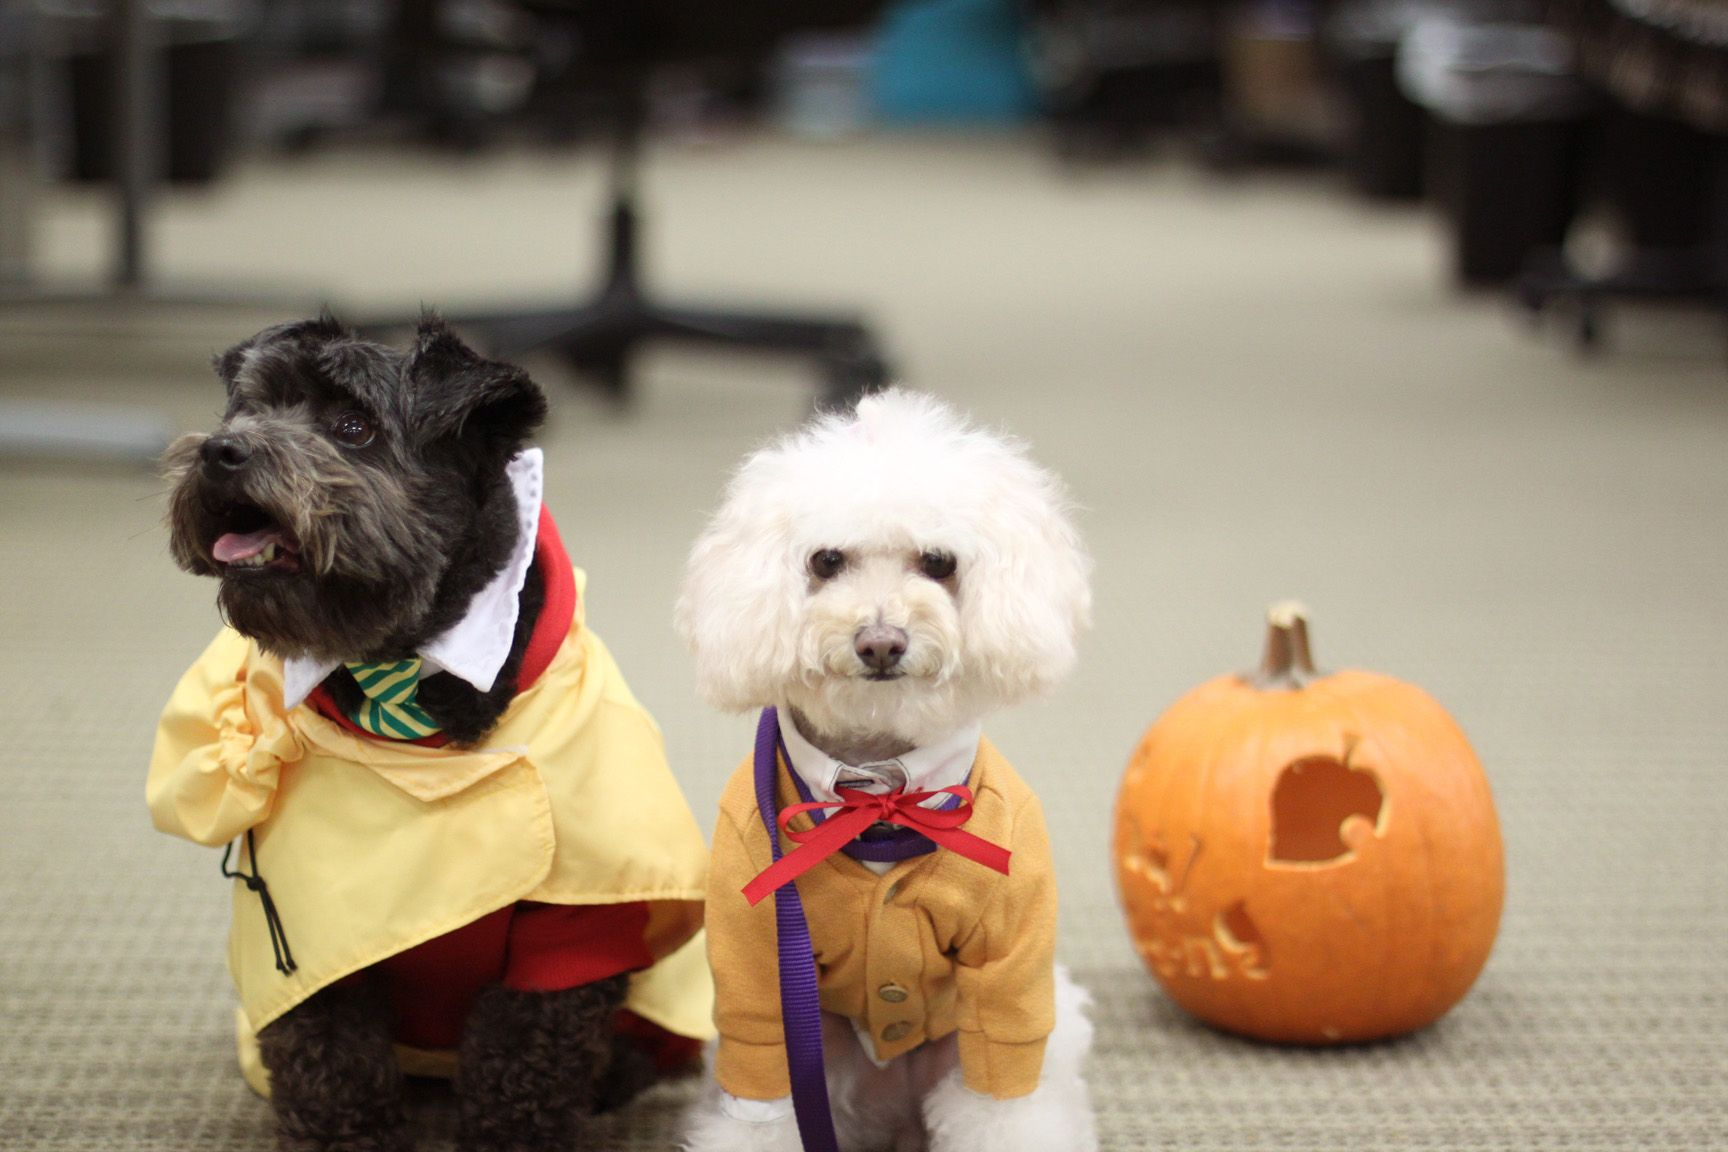 Moiji and Wifi the poodle mix Halloween costume as Digby